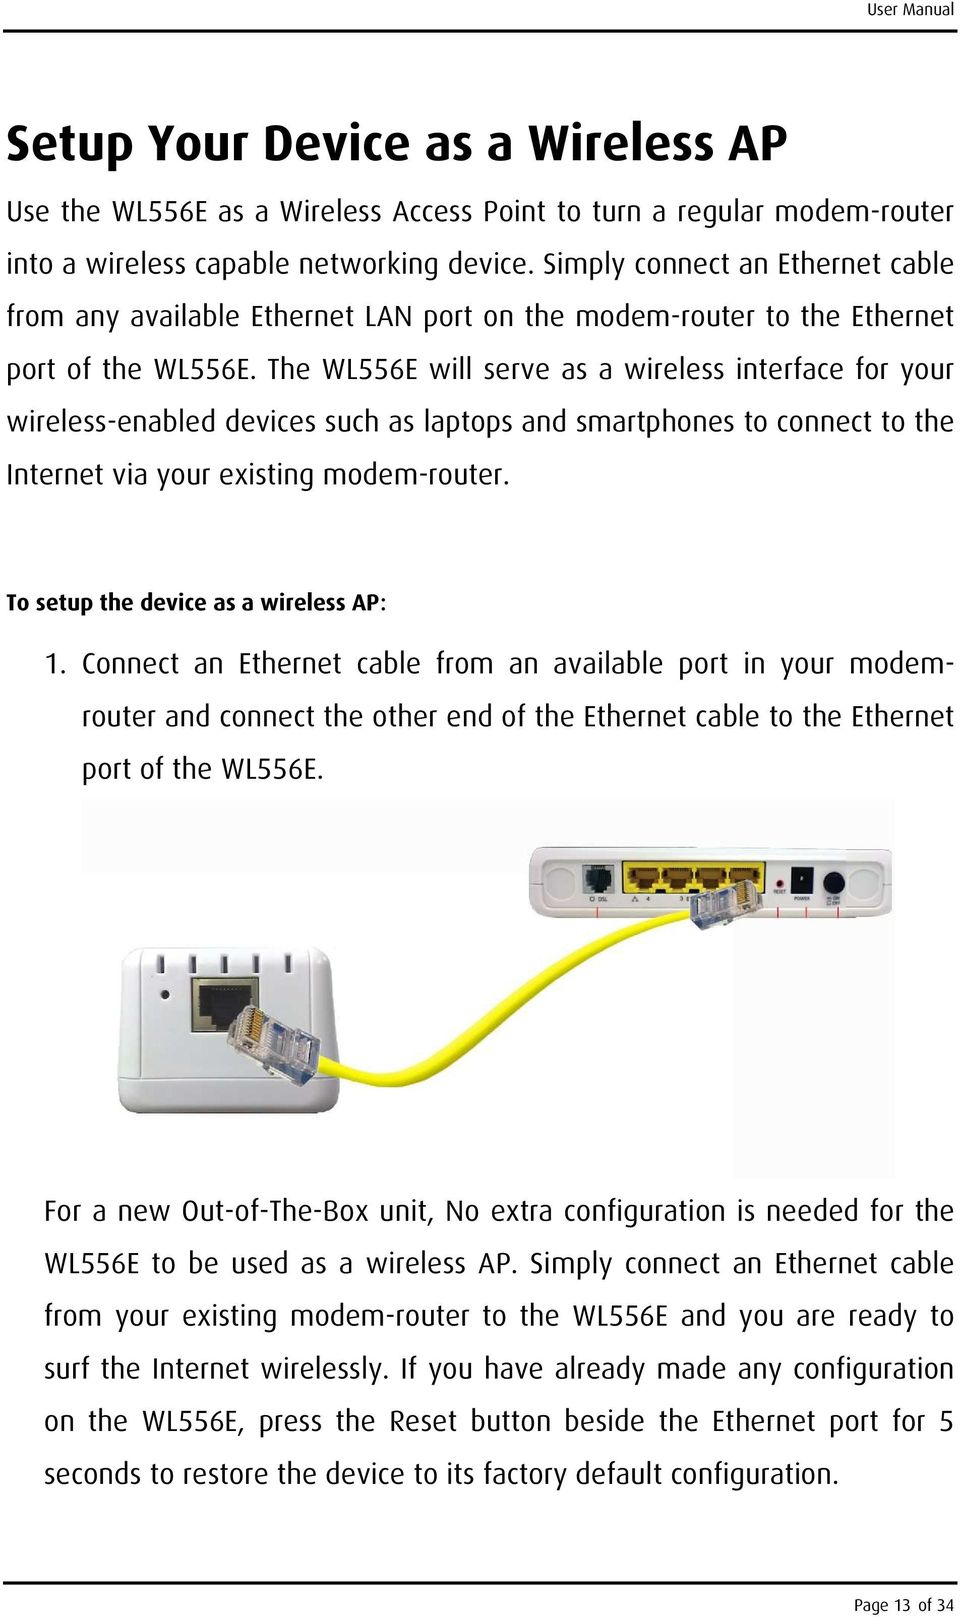 The WL556E will serve as a wireless interface for your wireless-enabled devices such as laptops and smartphones to connect to the Internet via your existing modem-router.